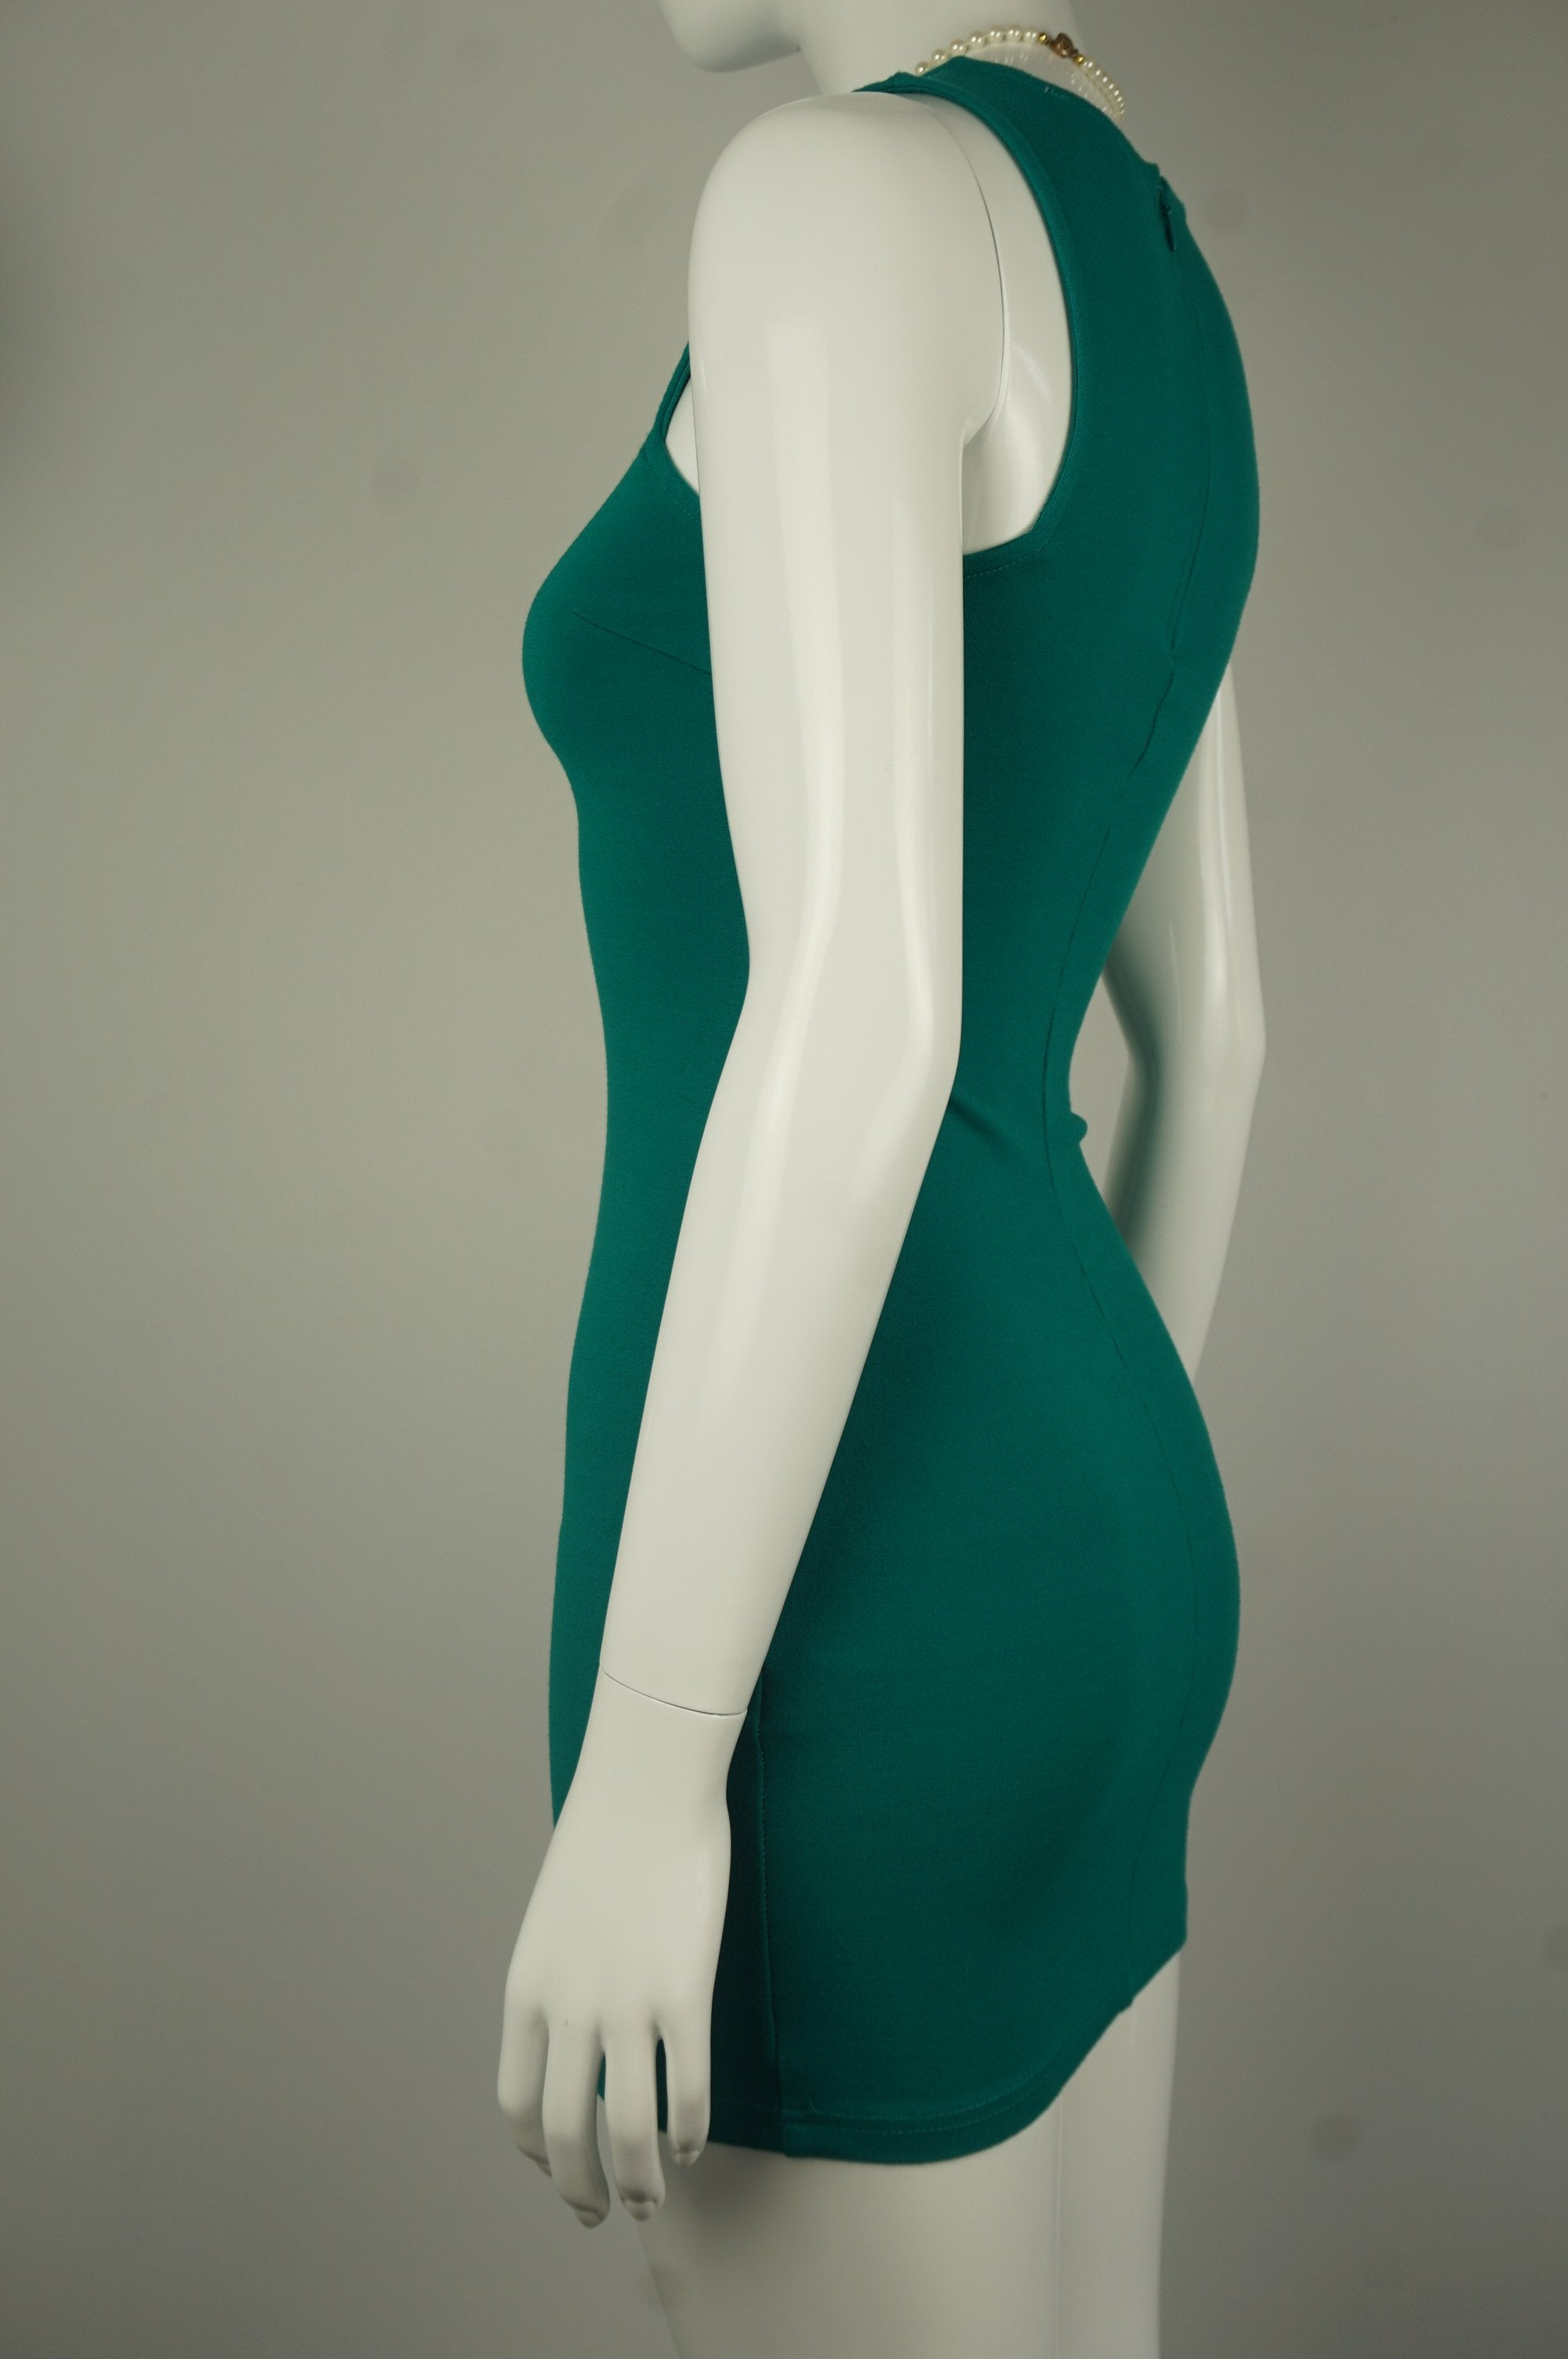 Forever 21 Vibrant Turquoise Bodycon Dress, We are loving this bright and shining bodycon dress for you! Made from four-stretchy fabric, this dress will color up your day and the party you're going to! , Green, 4-way stretchy fabric, women's Dresses & Skirts, women's Green Dresses & Skirts, Forever 21 women's Dresses & Skirts, Bodycon turquoise dress, bodycon party green dress, basic comfy stretchy dress